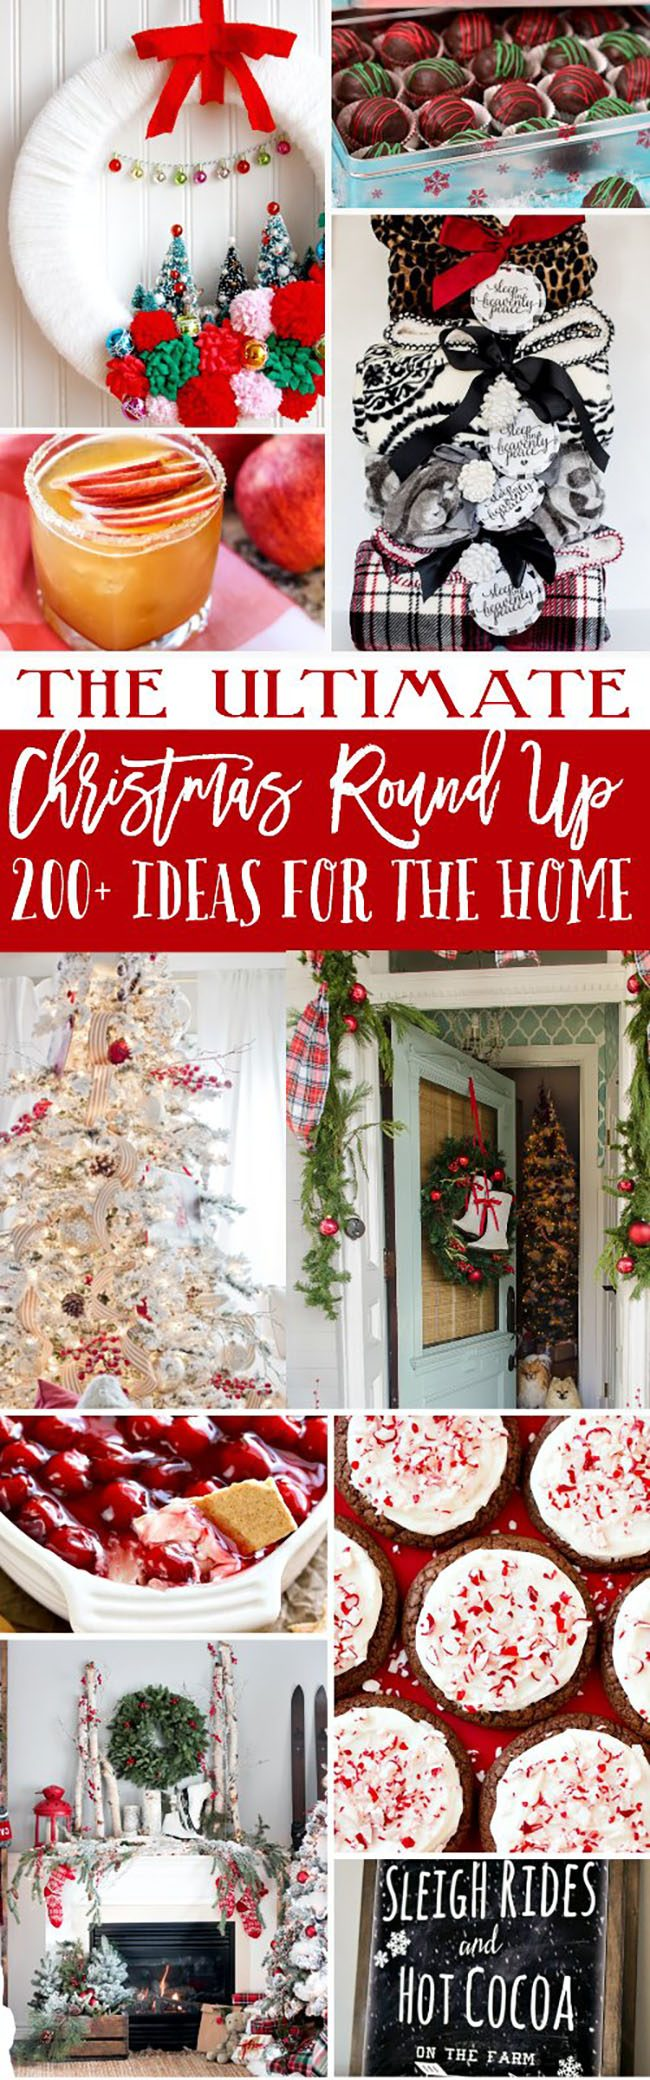 The Ultimate Christmas Round Up! Over 200 ideas for the home, gifts and recipes to make. You'll find homemade Christmas treats, drinks and appetizers, to party ideas, printables, gifts, Christmas decor and more at TidyMom.net